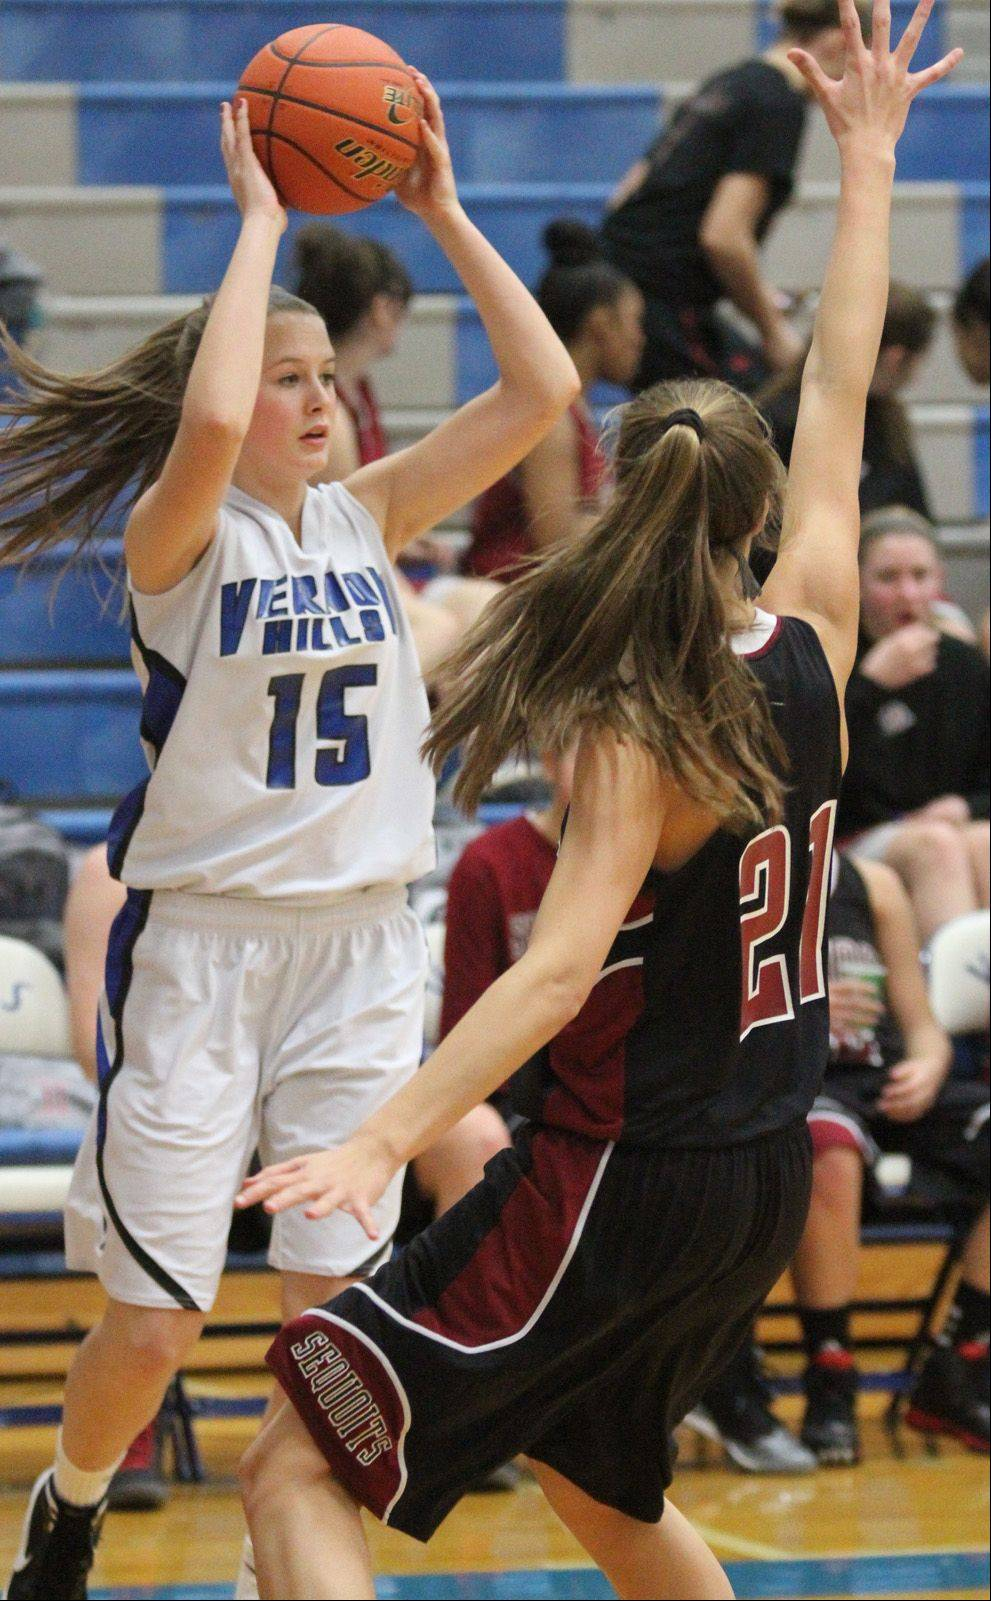 Images from the Antioch at Vernon Hills girls basketball game Saturday, Dec. 15 in Vernon Hills.